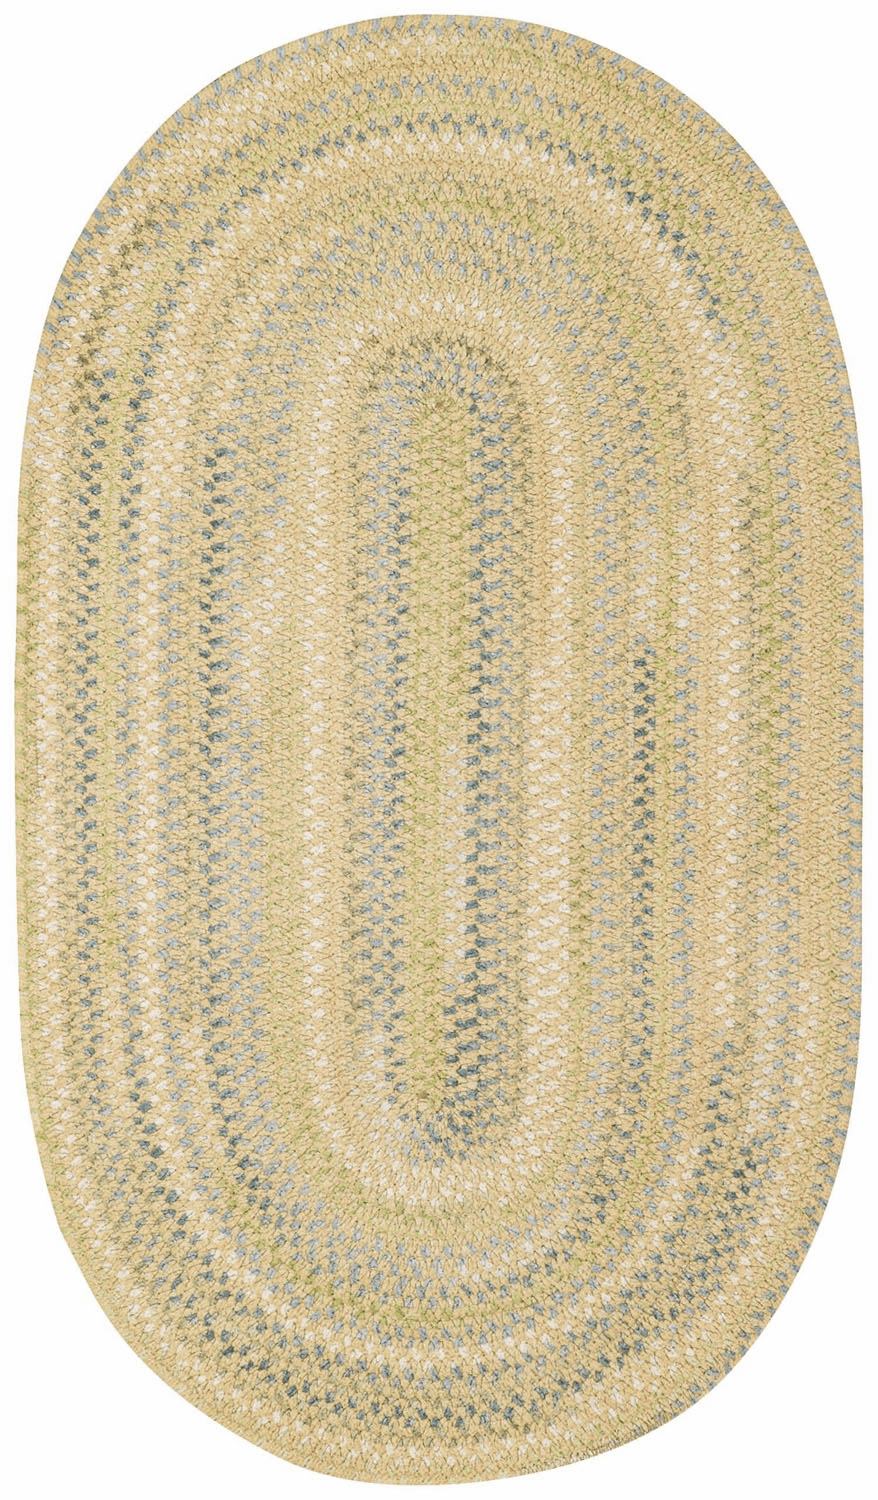 Hand-Braided Natural Rug